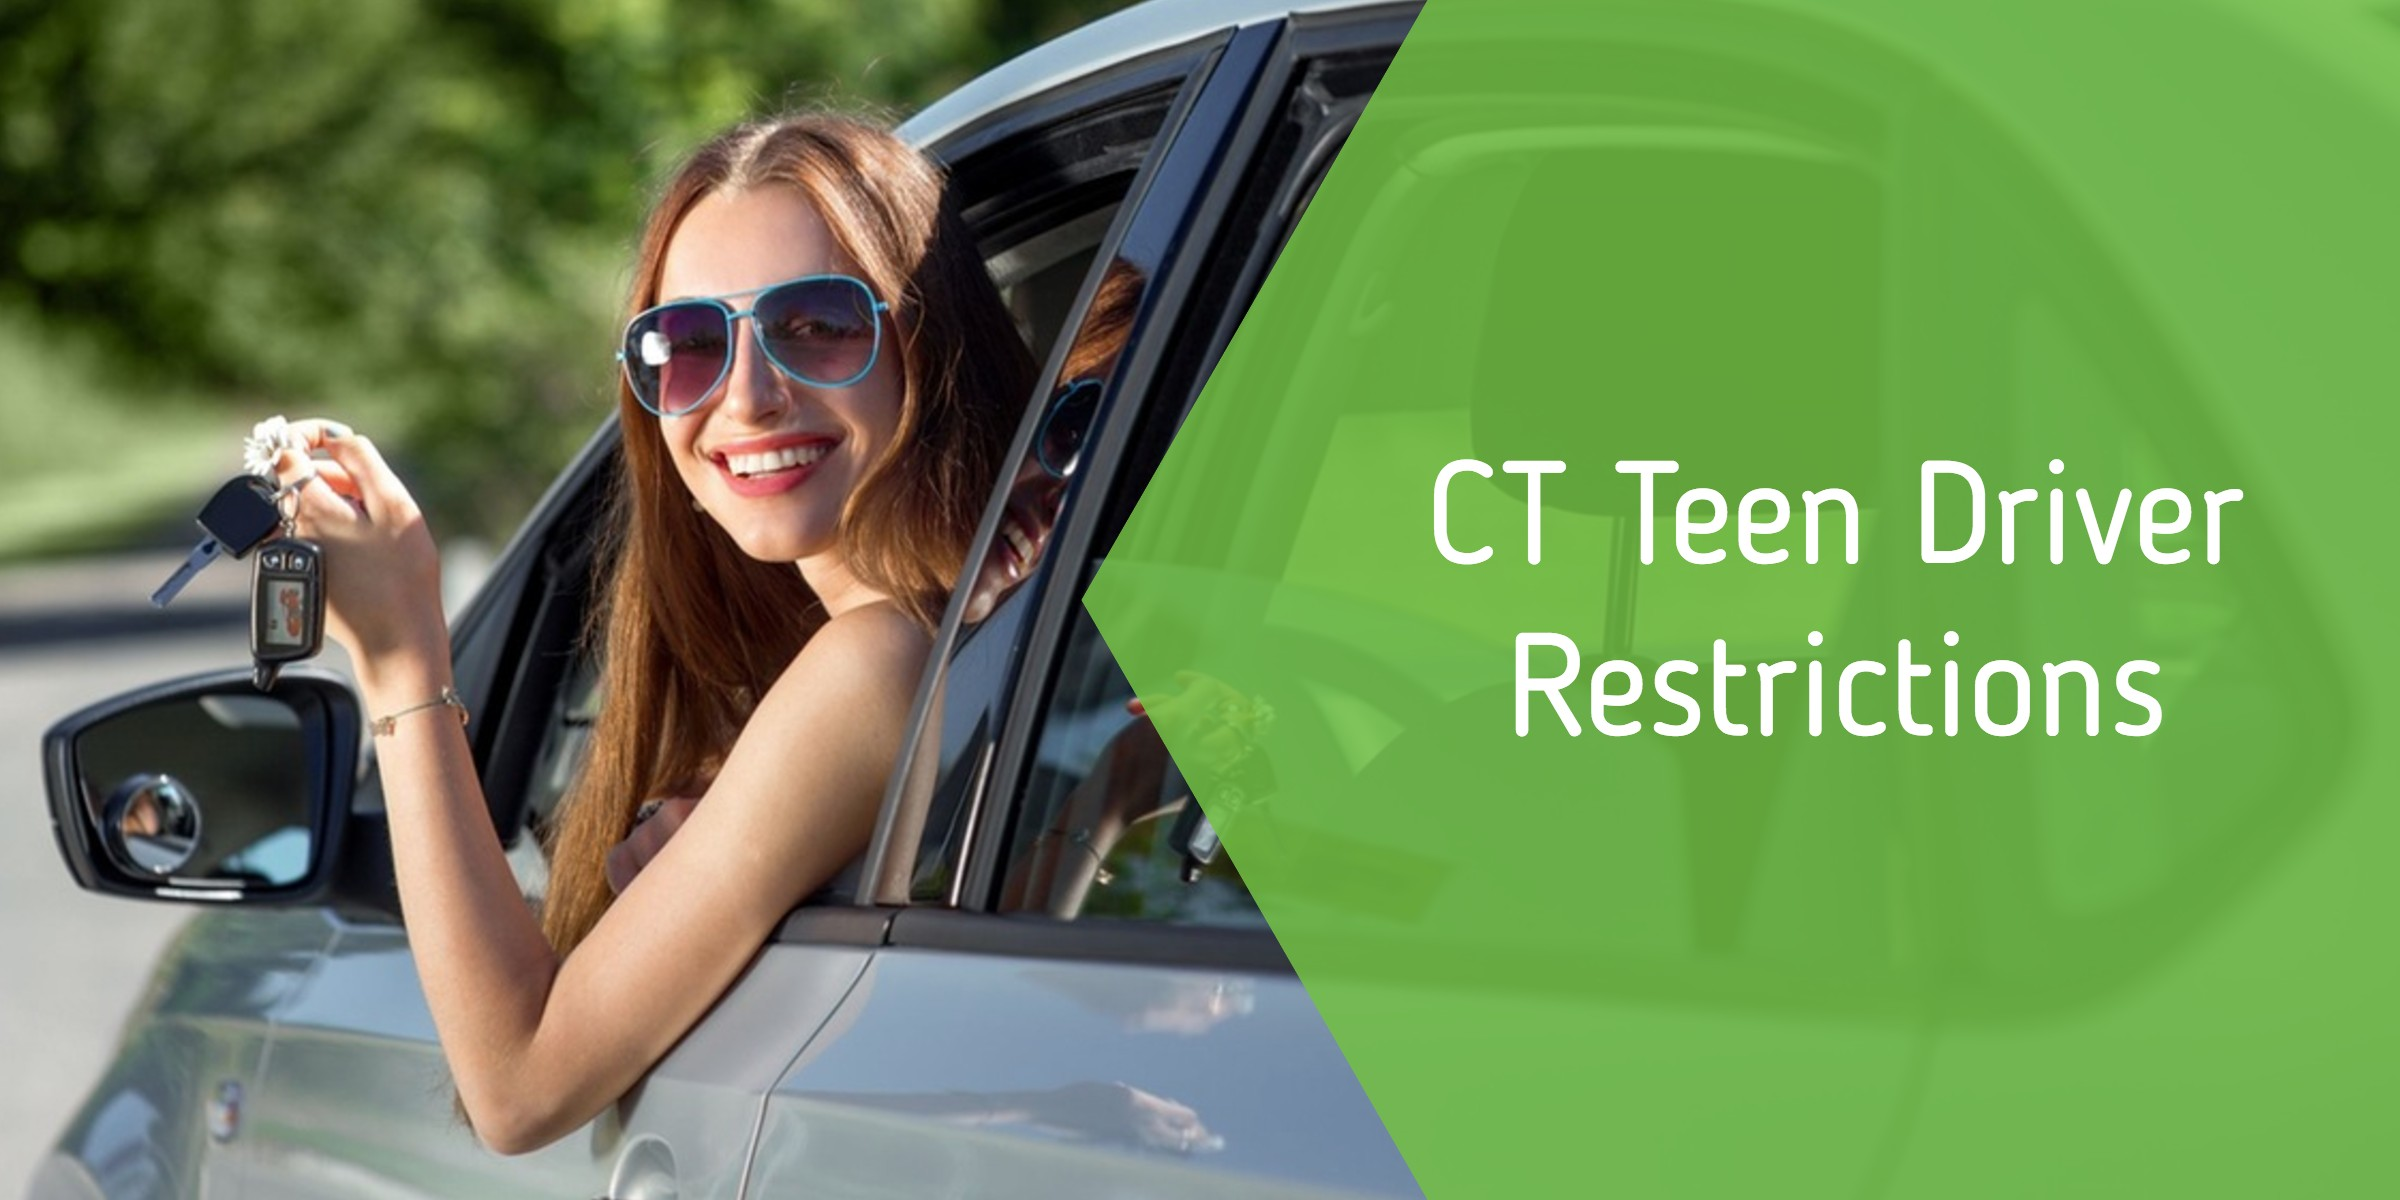 Title_CT_Teen_Driver_Restrictions.jpg